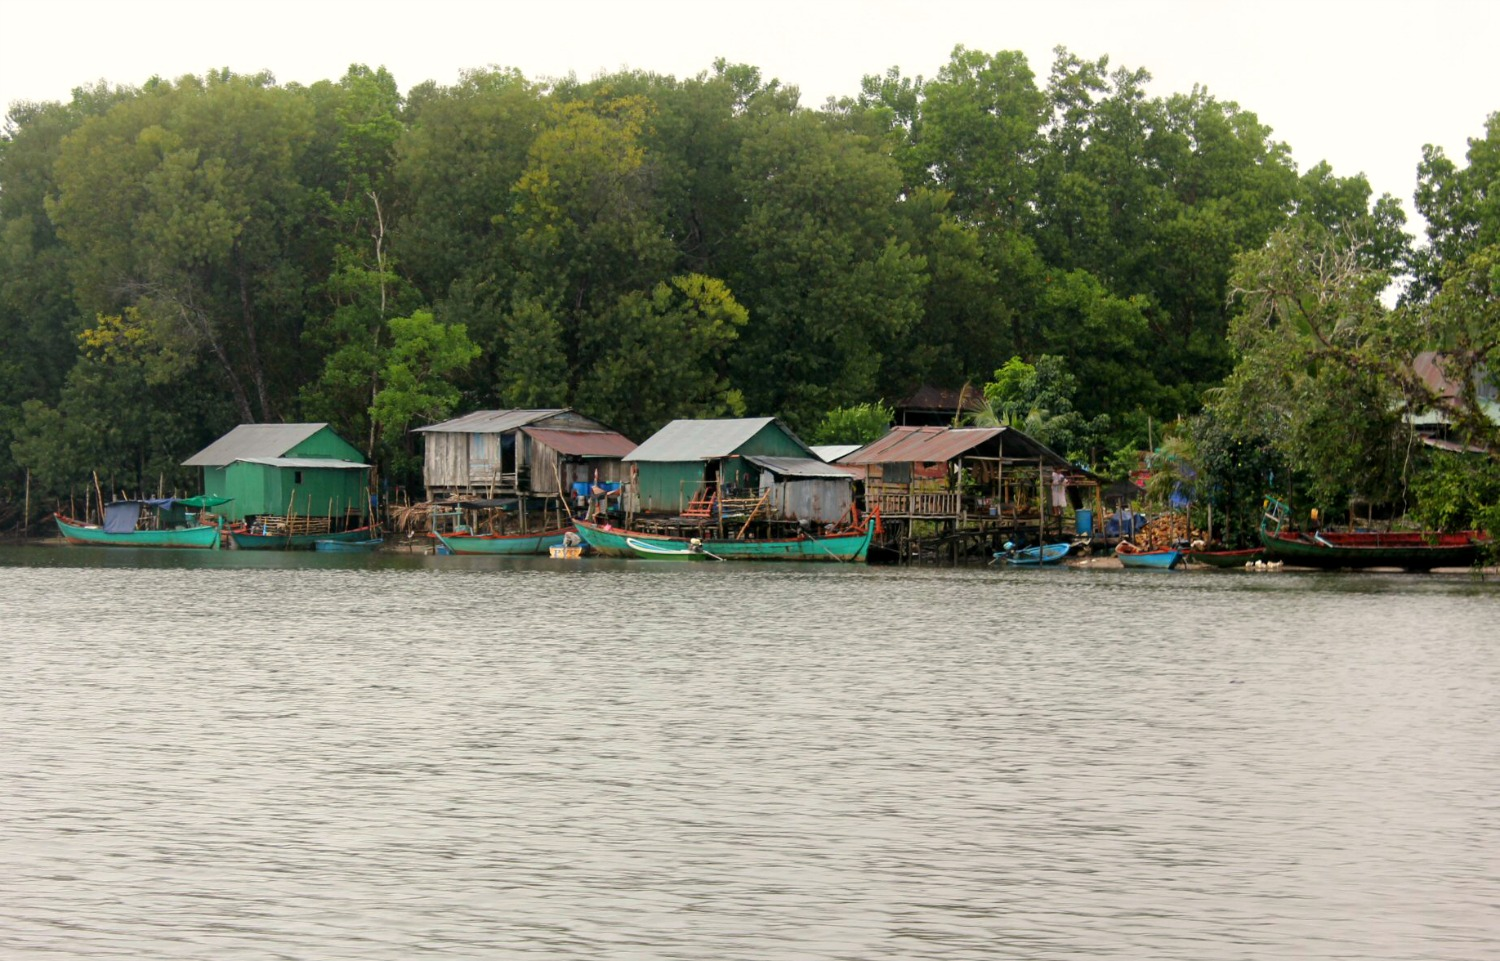 Houses by the side of the river Tatai - discovering Cambodia's Cardamom Mountains with kids